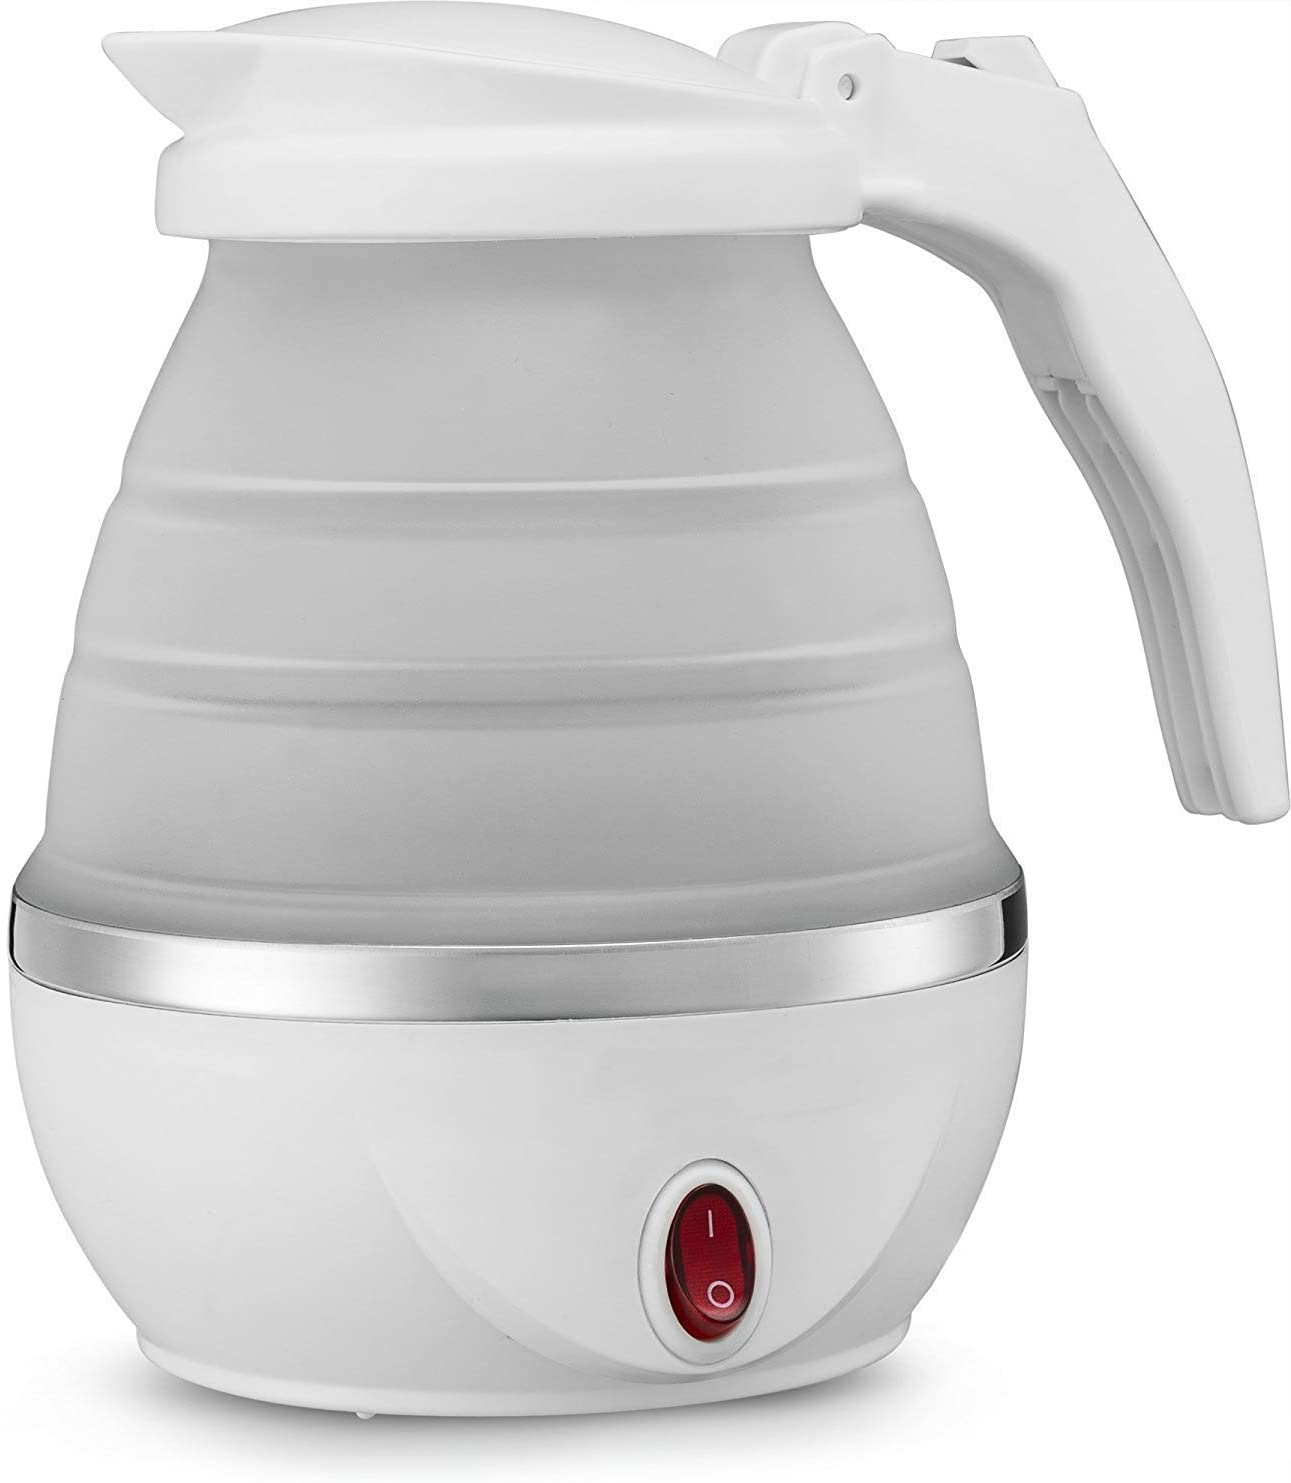 Travel Foldable Electric Kettle - Fast Water Boiling, Small Electric Kettle Food Grade Silicone, Boil Dry Protection